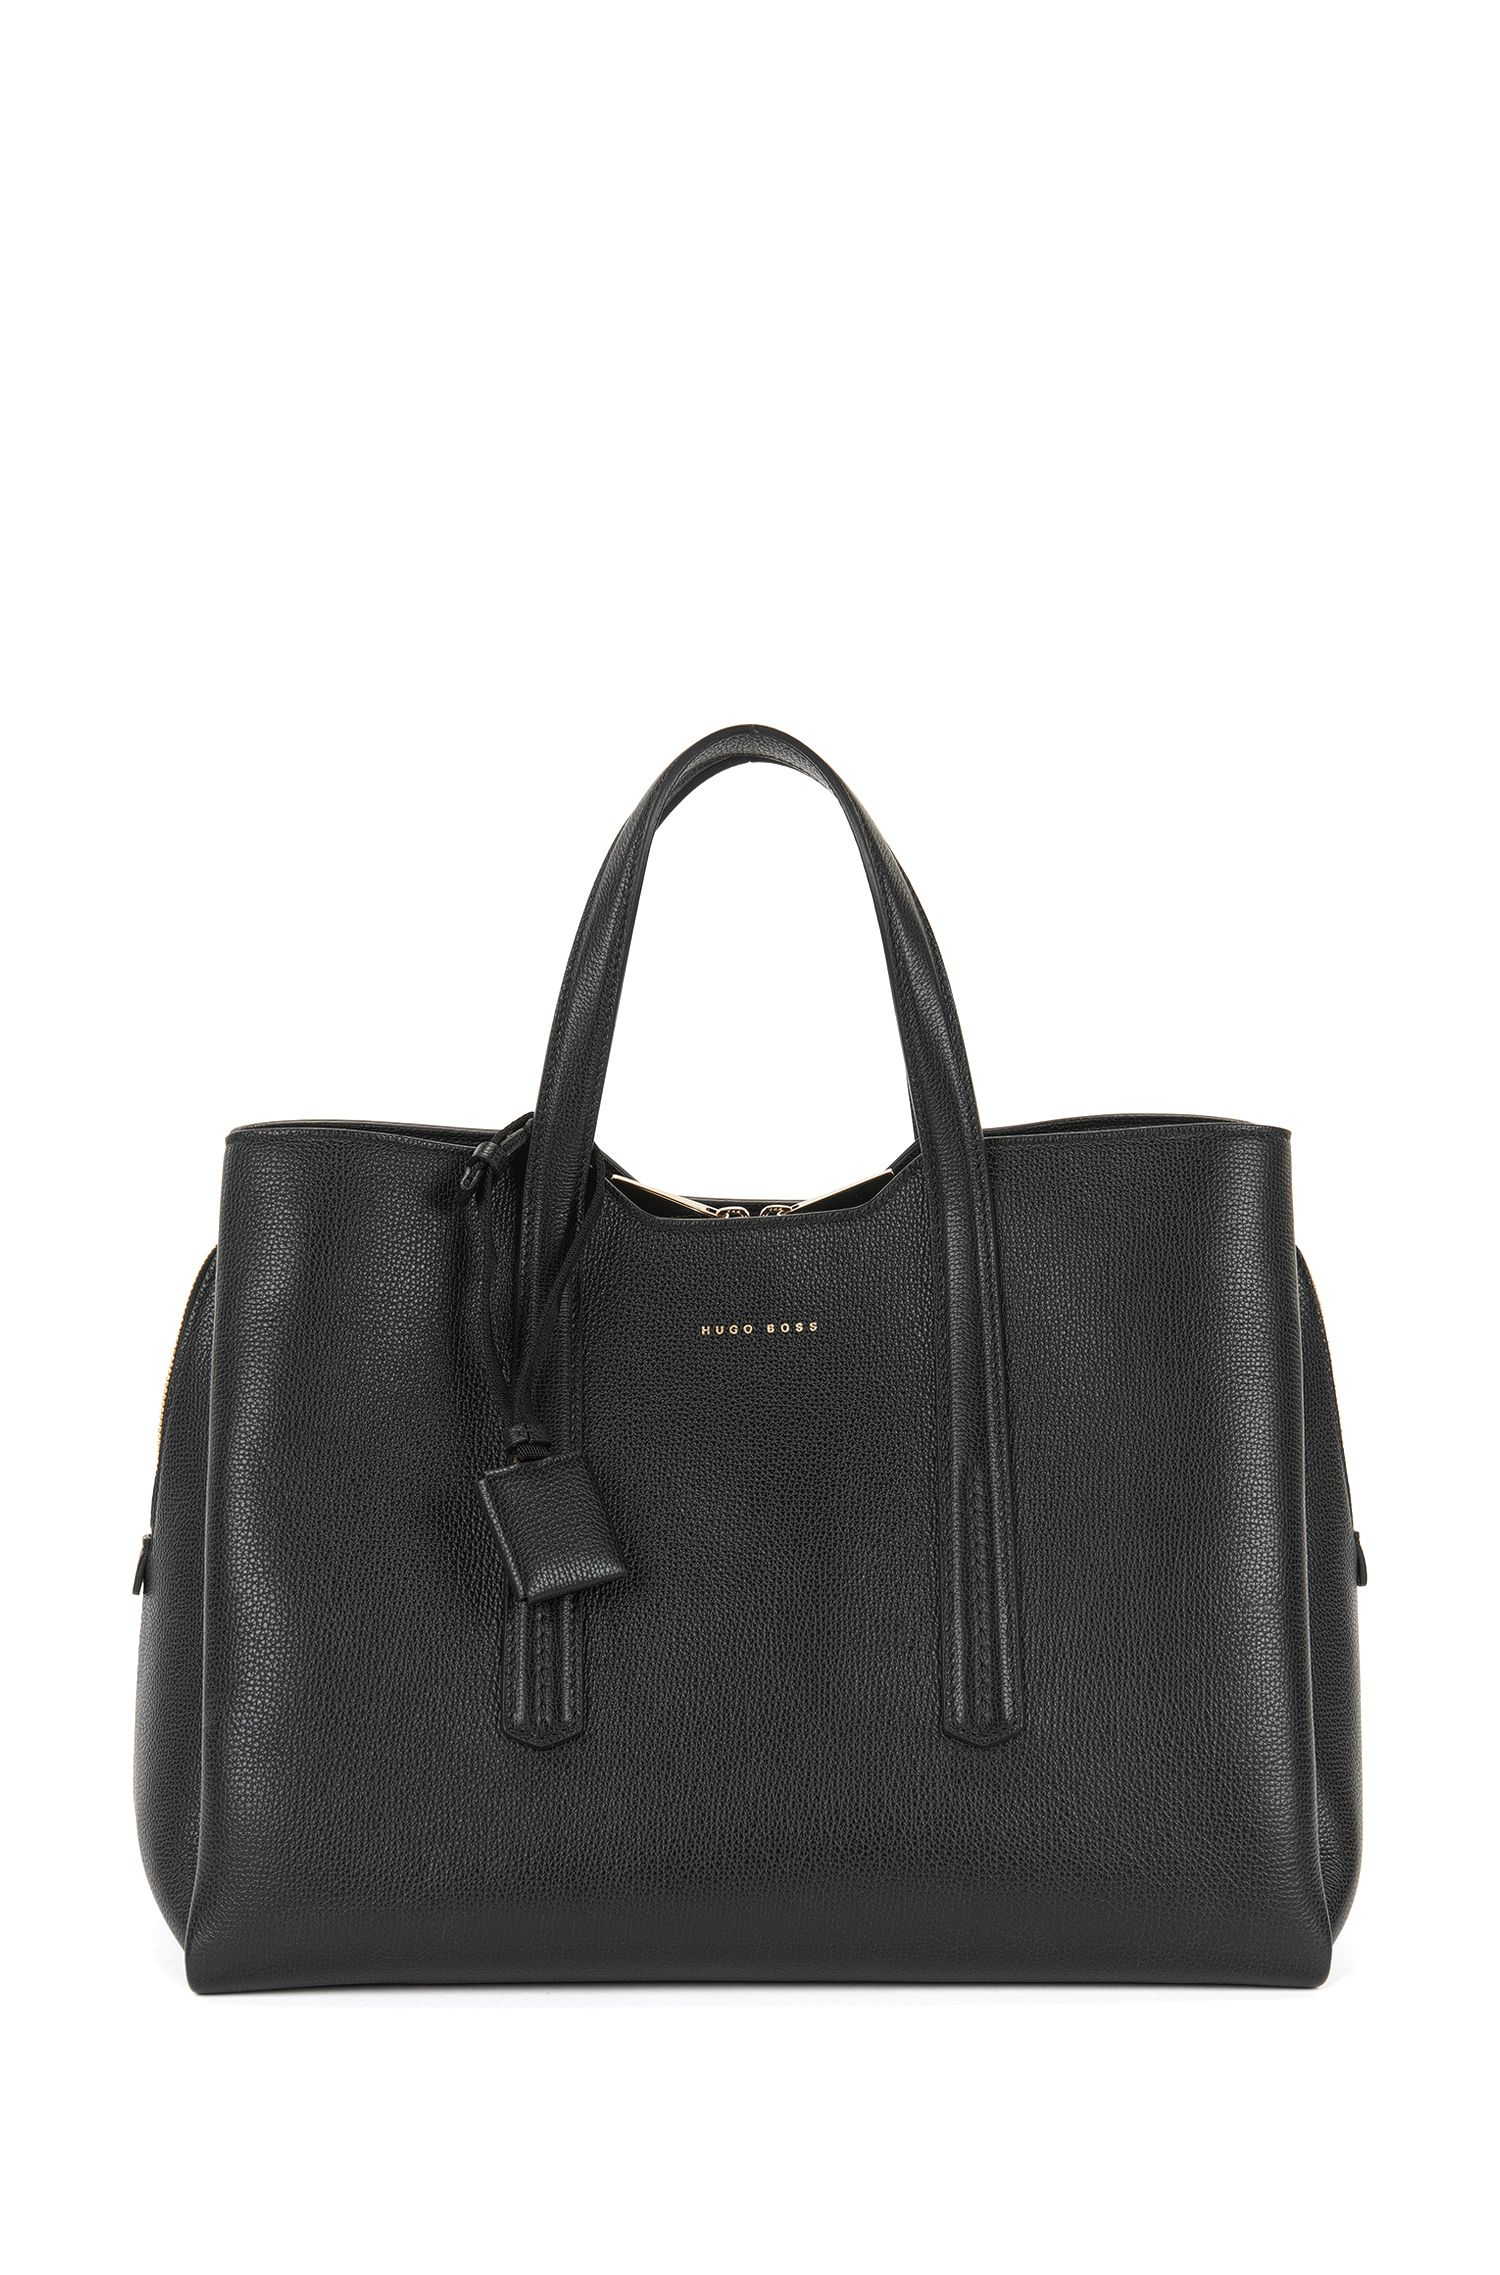 Full-Grain Leather Tote | Taylor Tote